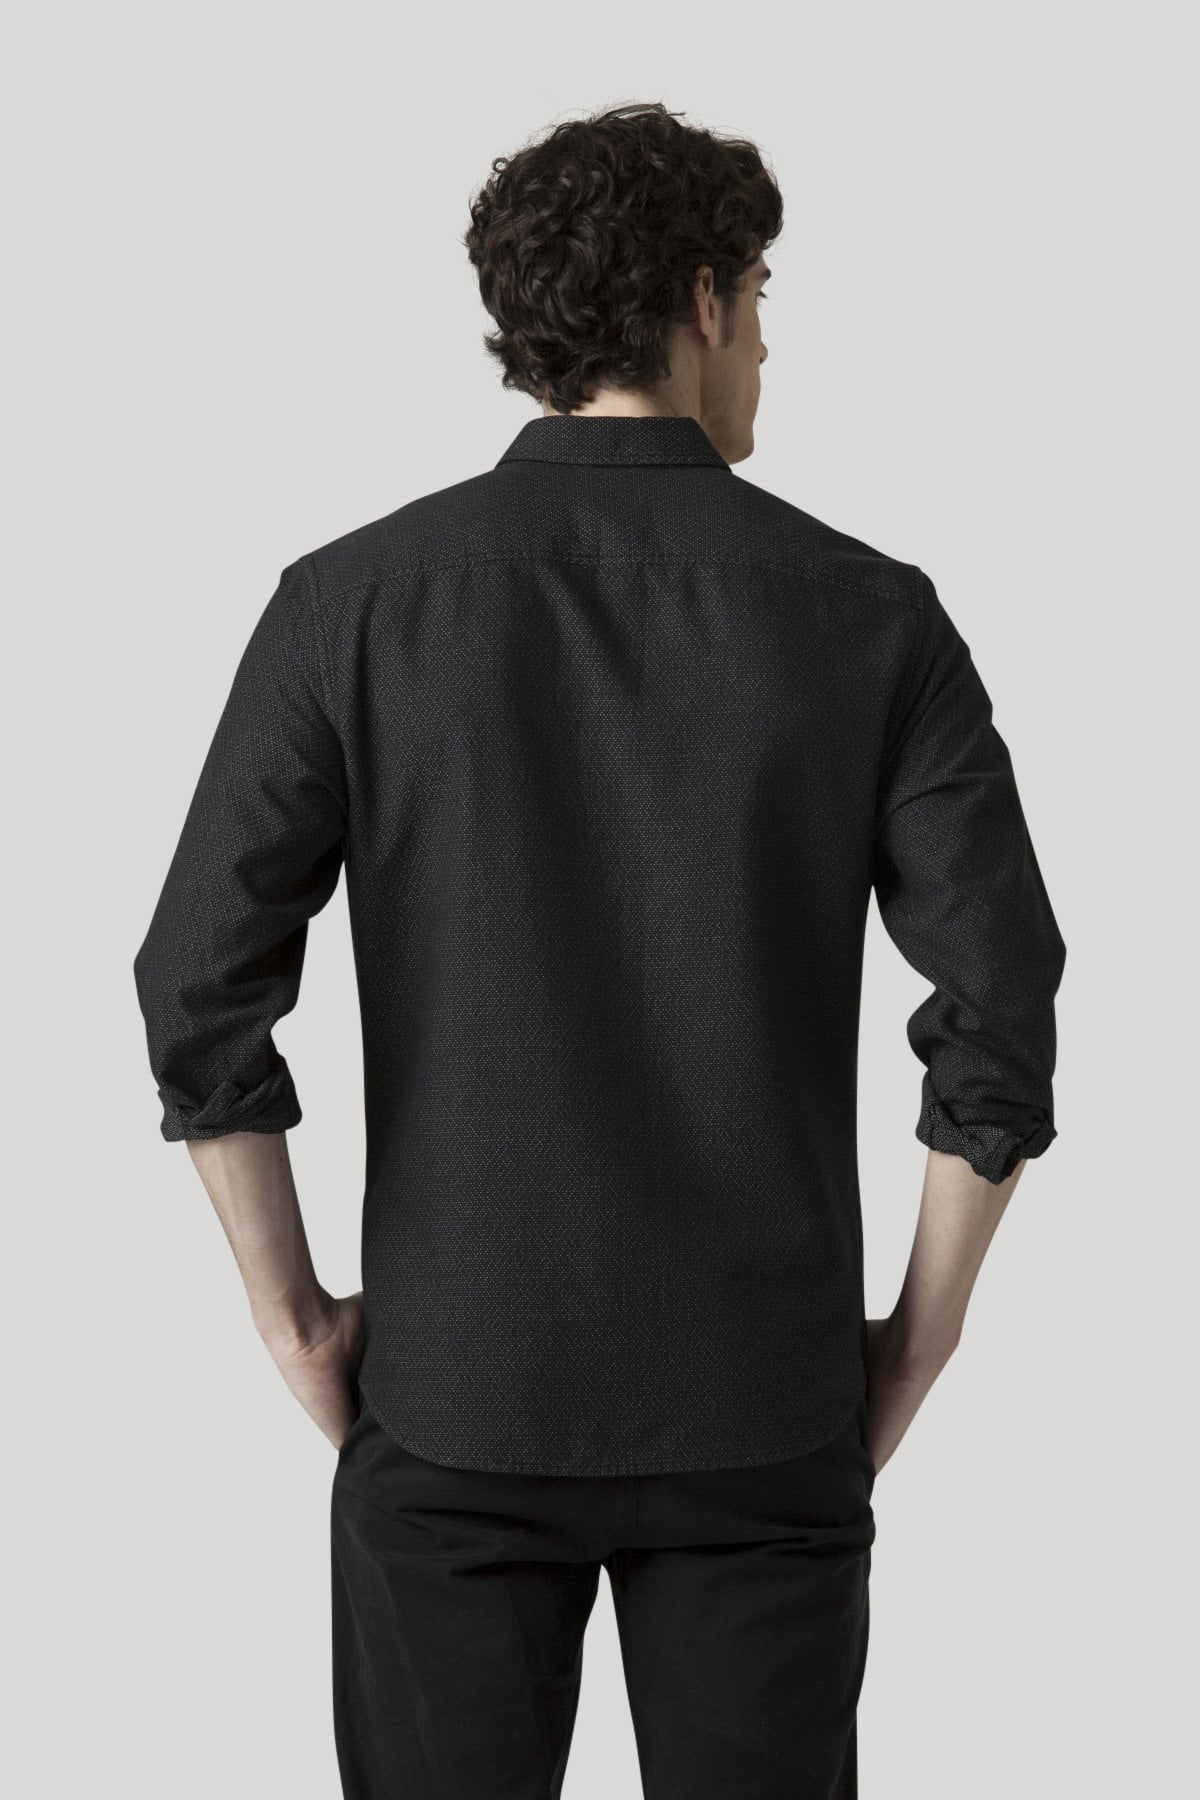 Flurry Shirt - Jet Black